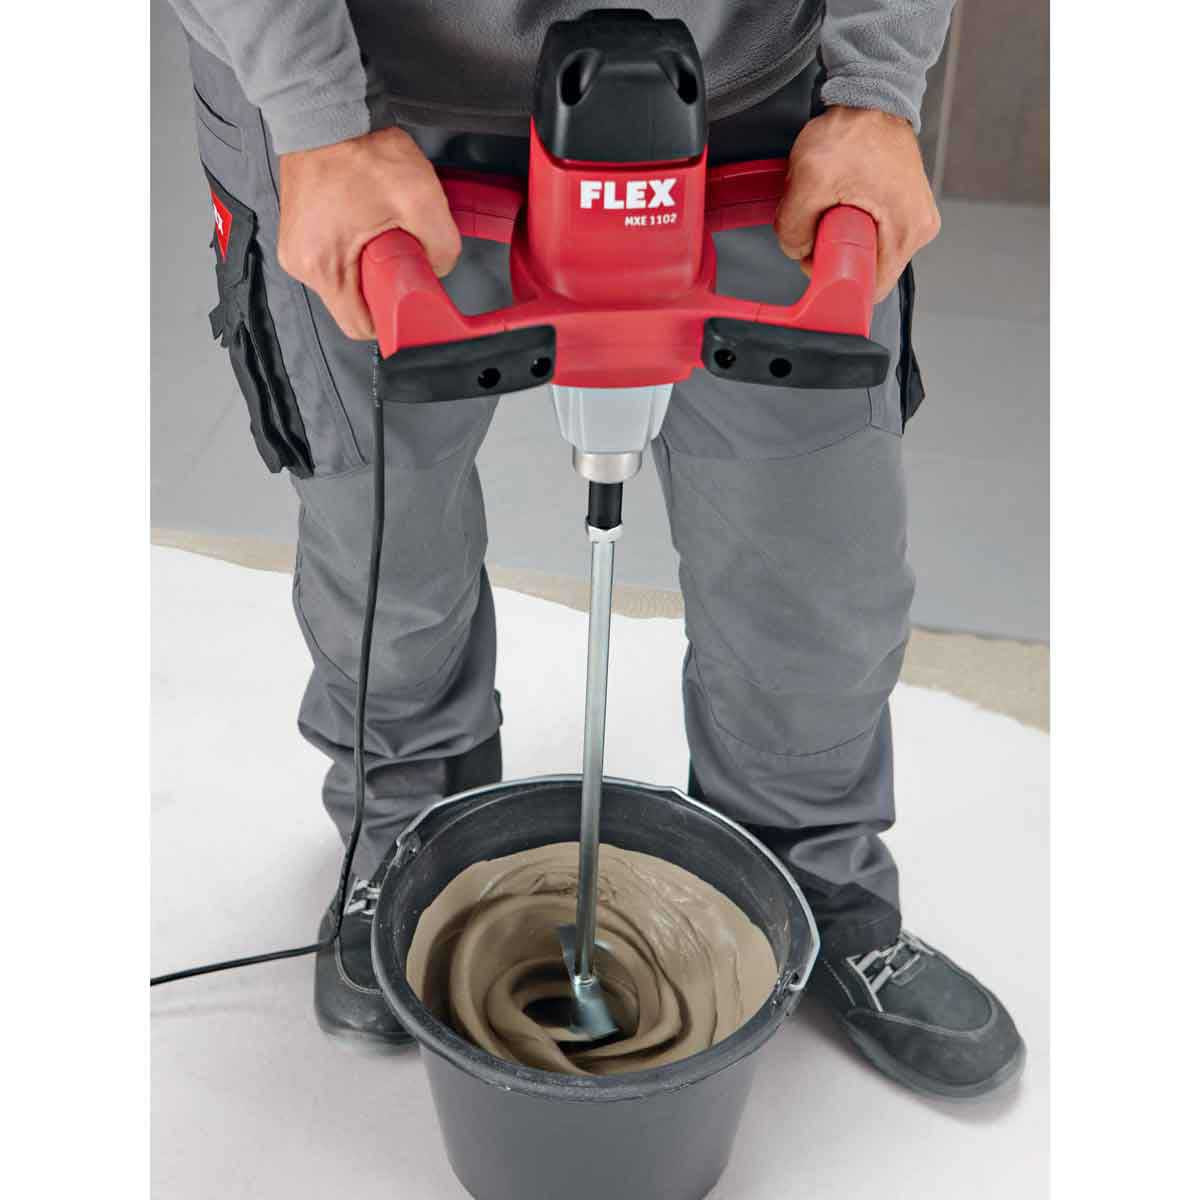 2 Speed Mixer with Helix Paddle Flex